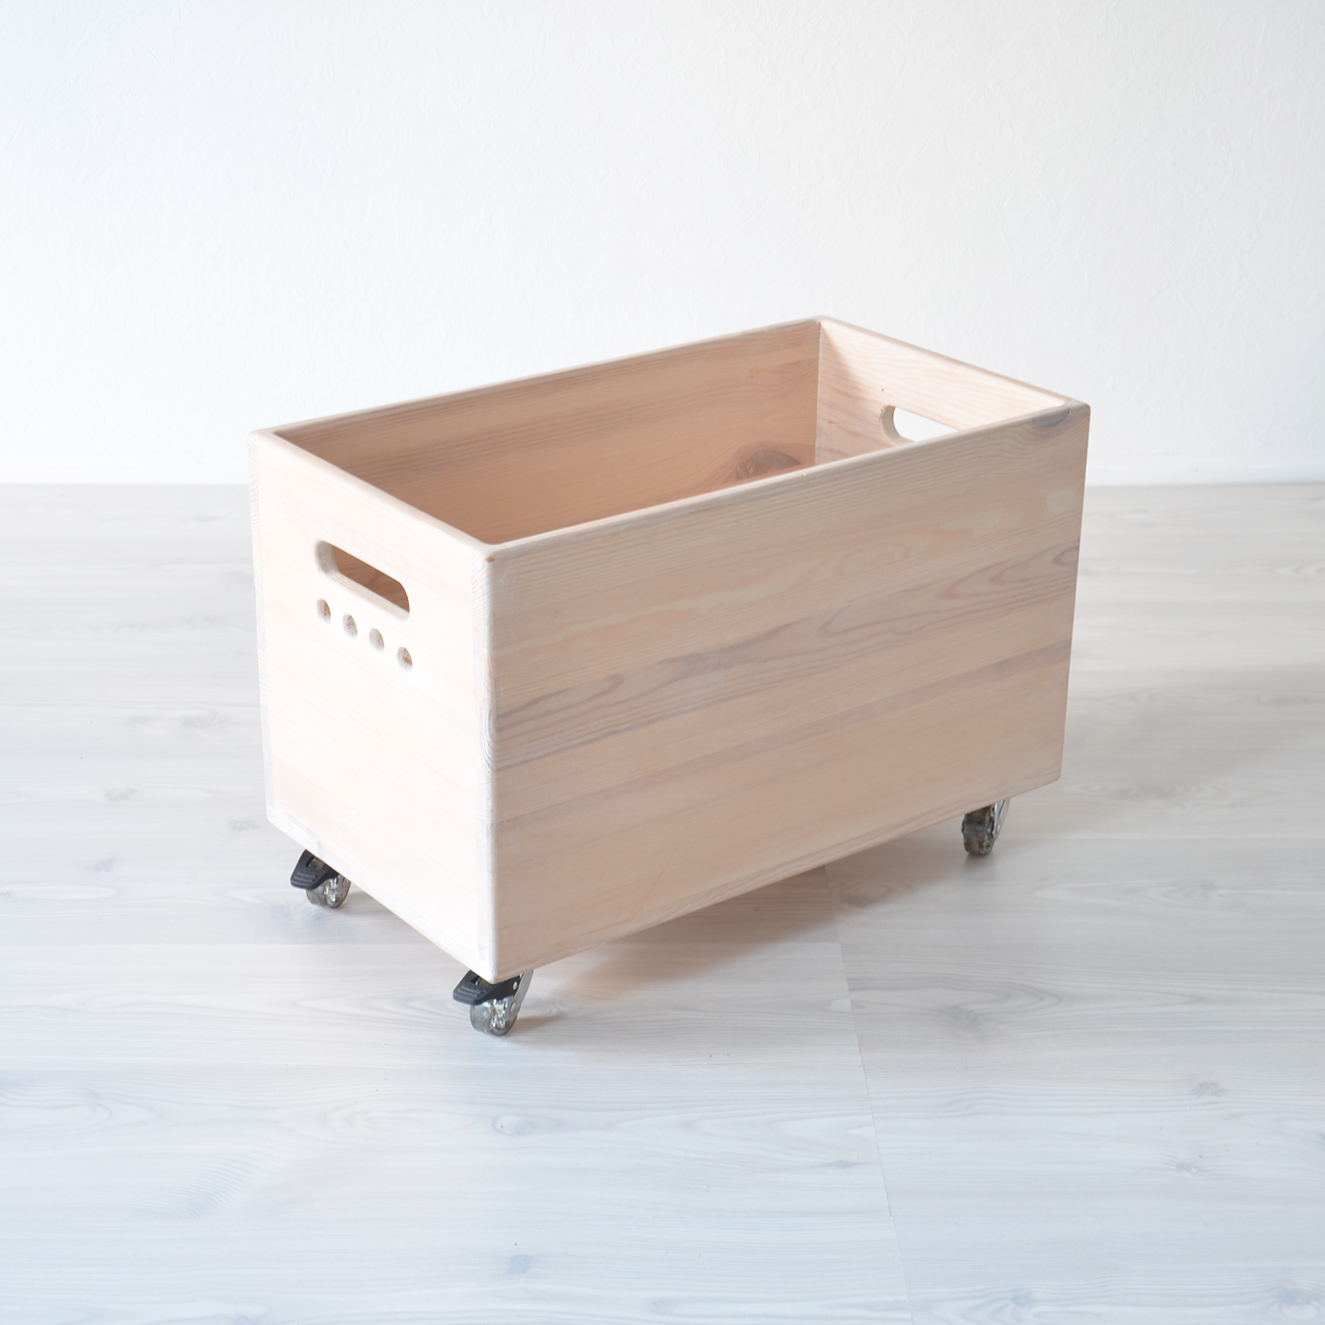 Wooden Toy Box Storage on Wheels - shopkidday